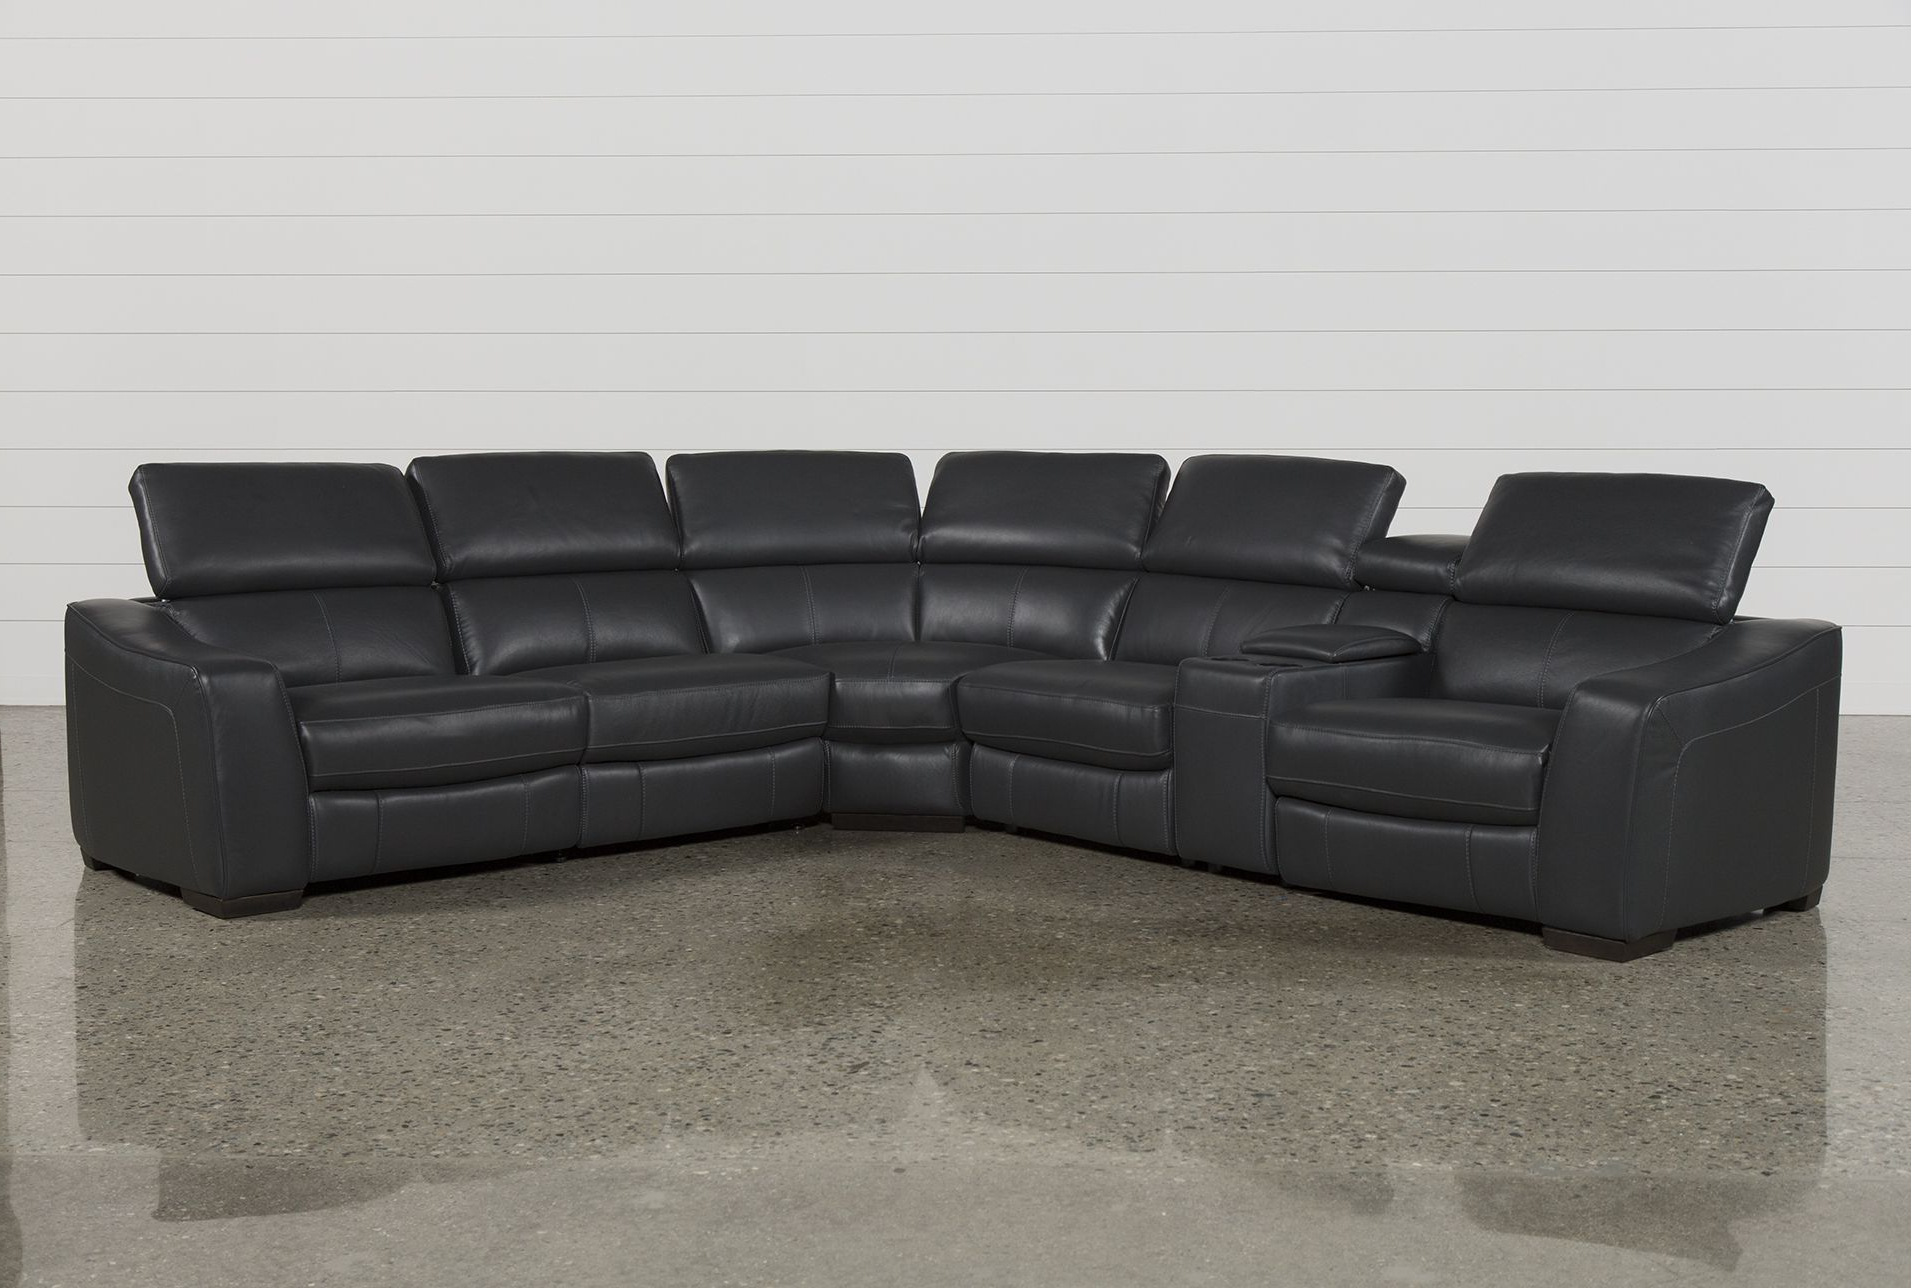 Widely Used 6 Piece Power Reclining Sectional, Kristen Slate Grey, Sofas Pertaining To Tess 2 Piece Power Reclining Sectionals With Laf Chaise (View 20 of 20)